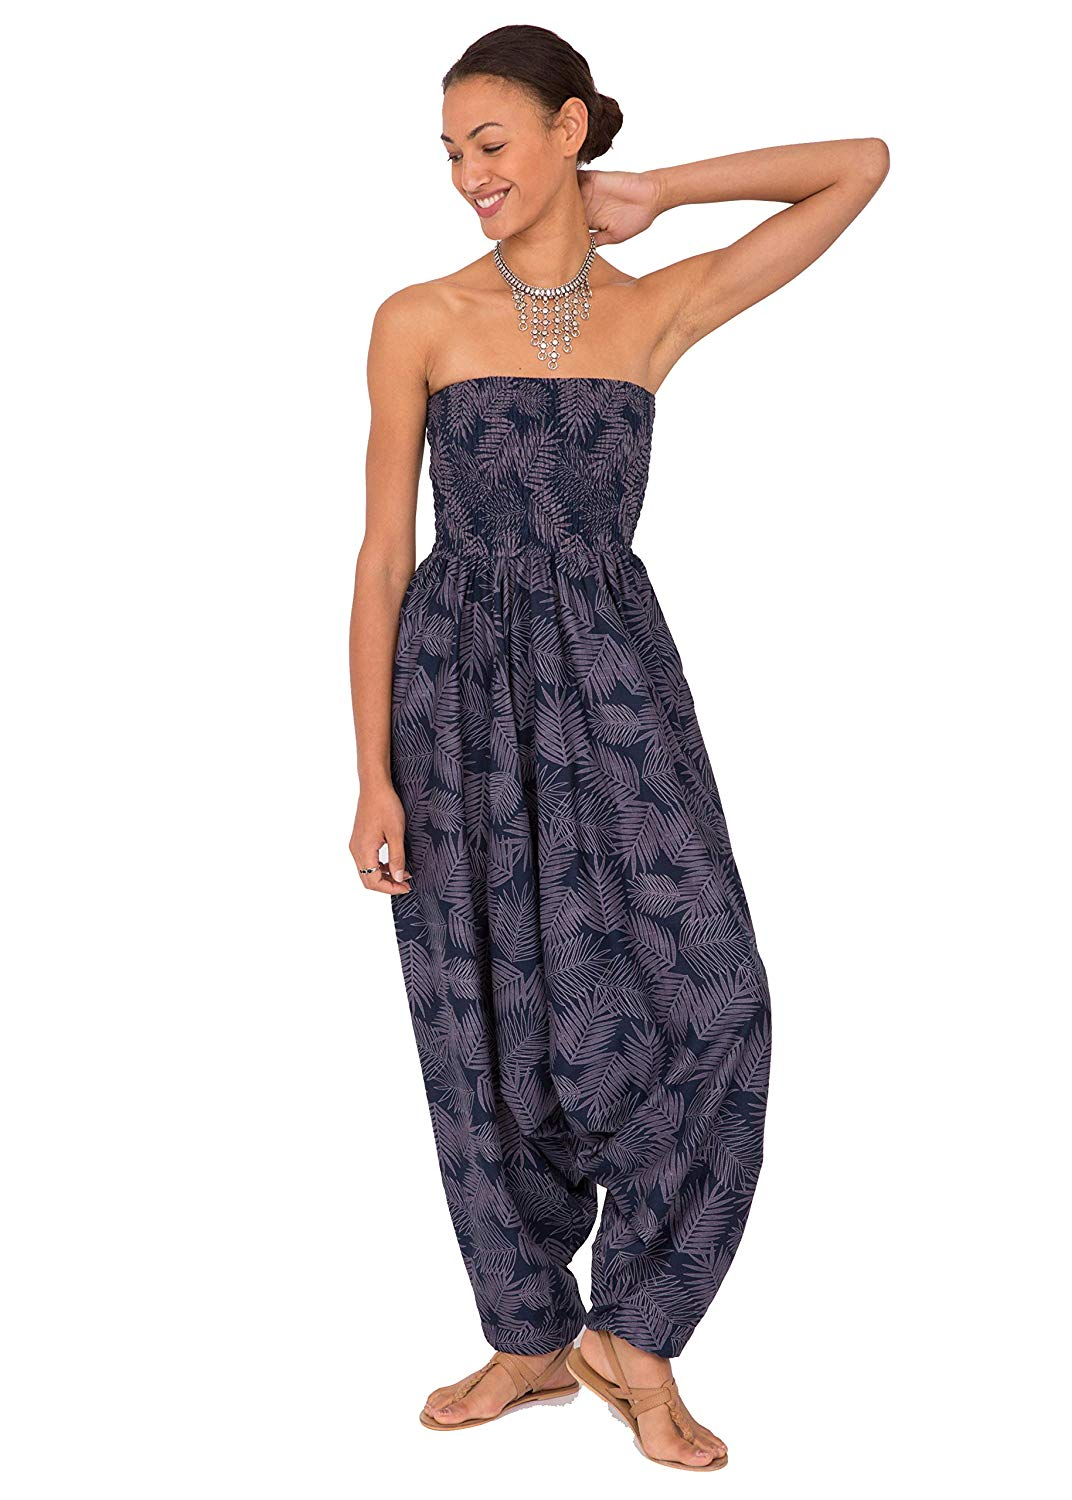 b460e38507 Buy Silk Look Maxi Harem Pants Jumpsuit Romper in Cheap Price on ...